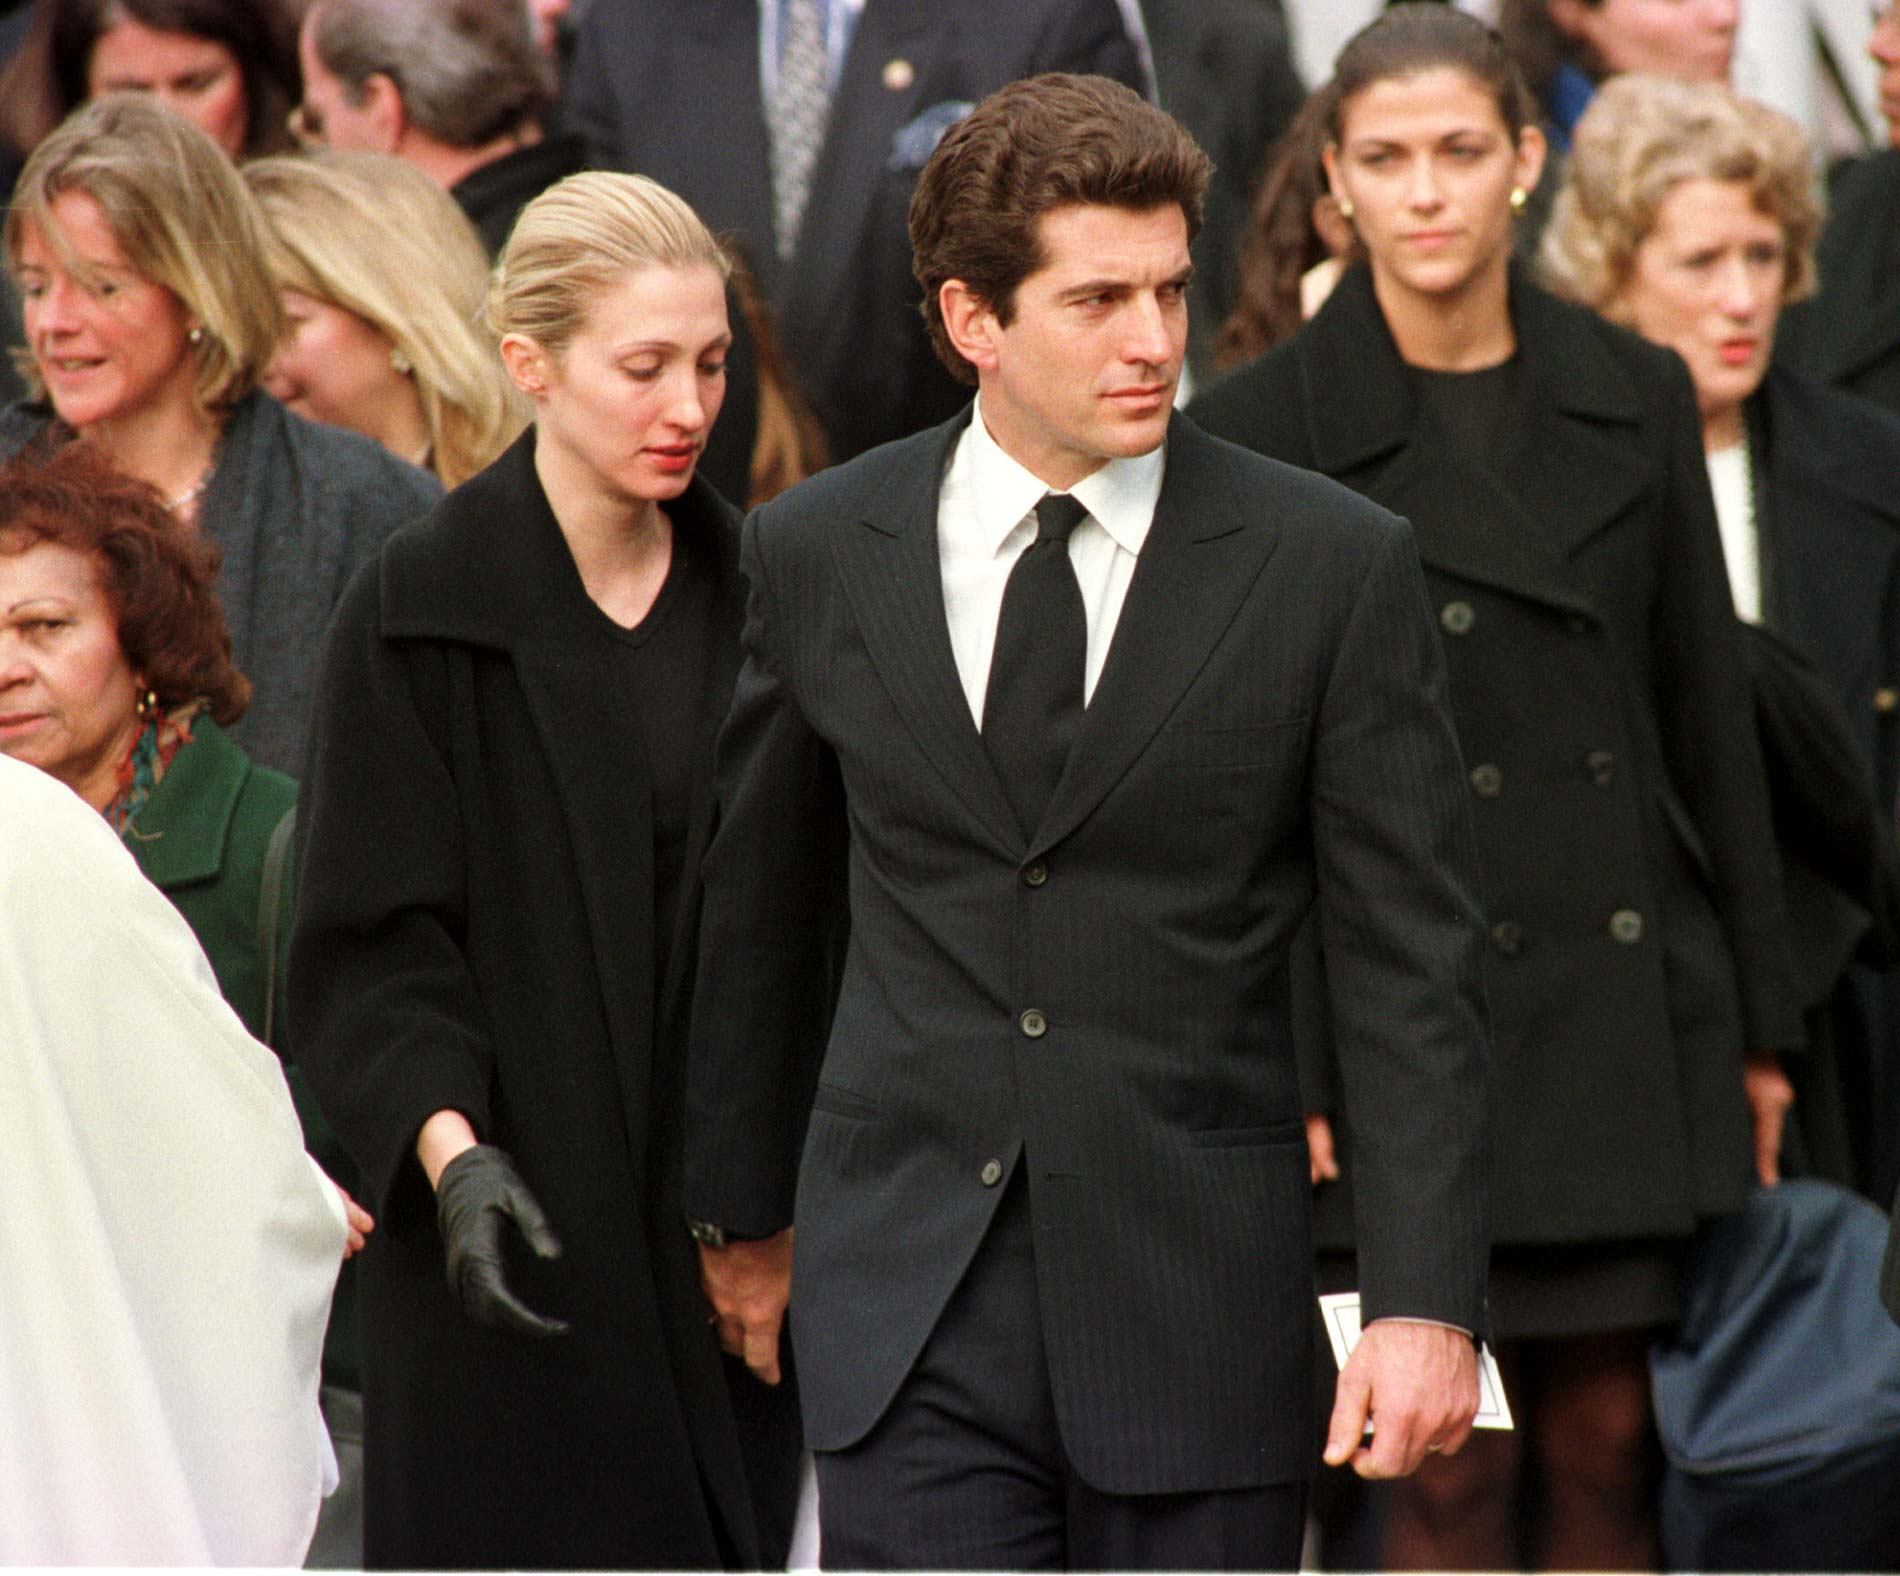 John F. Kennedy Jr. with his wife Carolyn after Michael Kennedy's funeral in Massachusetts on March 1, 1998. | Source: Getty Images.